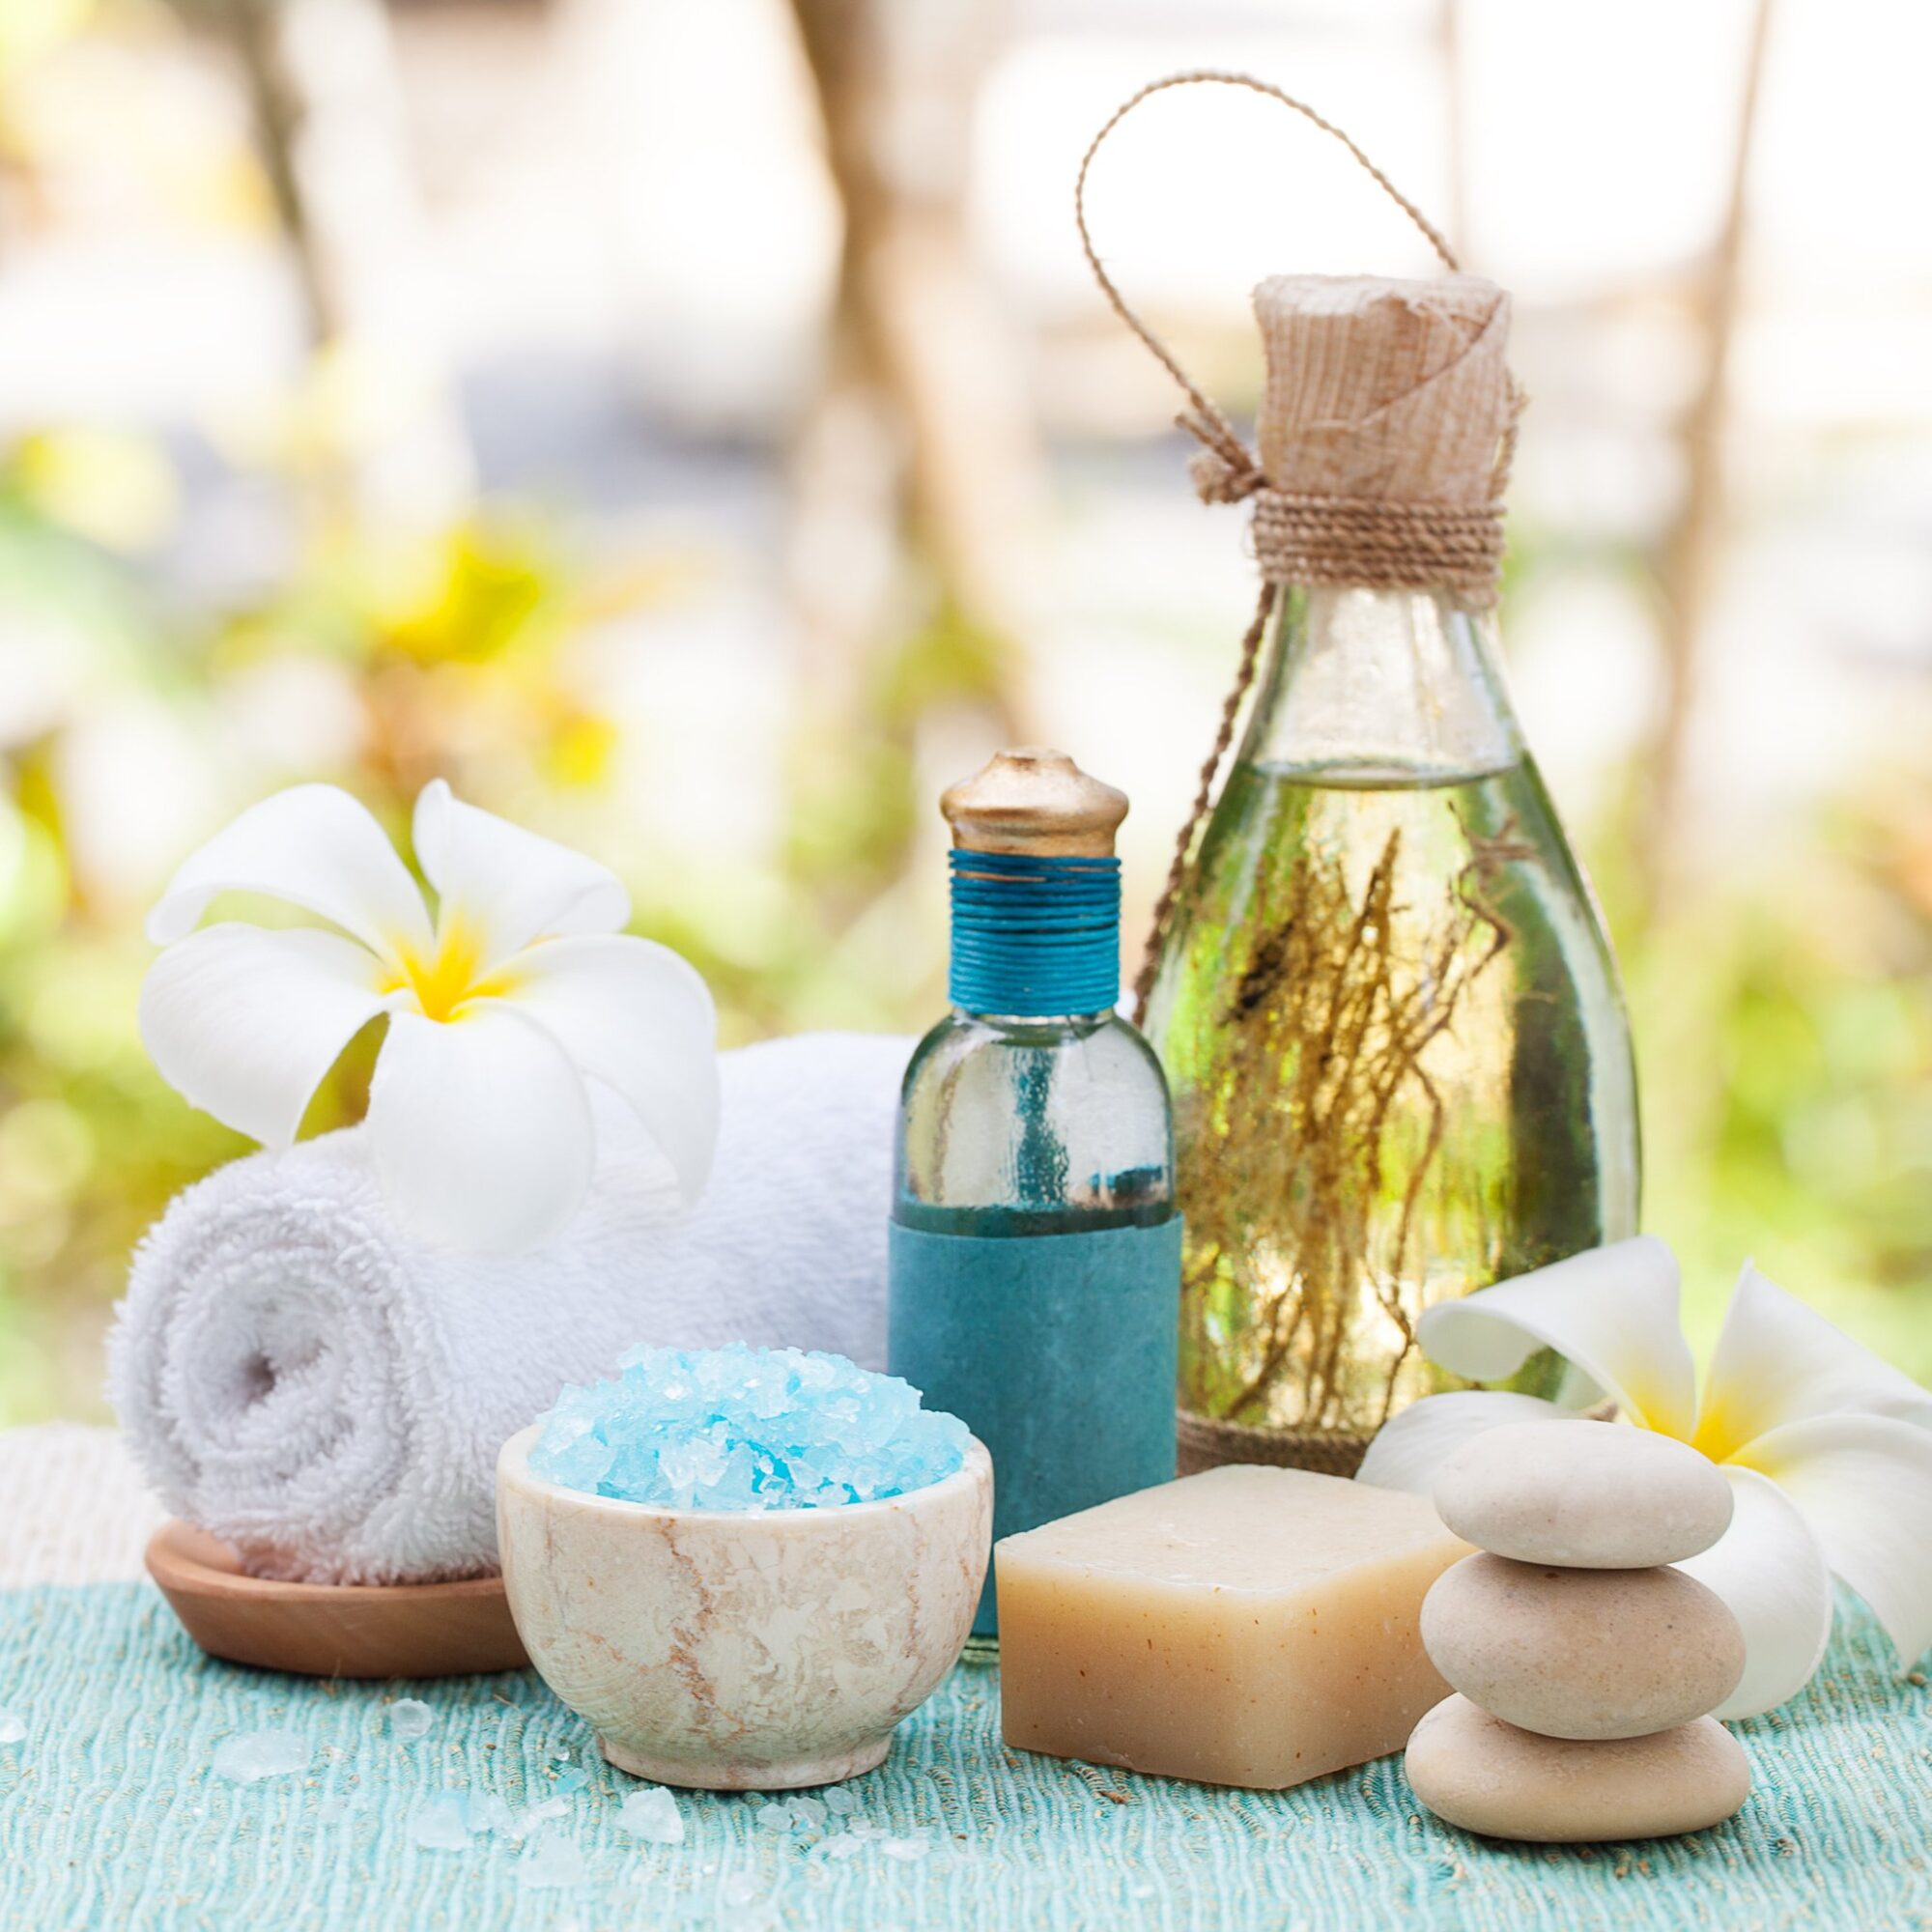 Essential oils, salts, and other spa items.